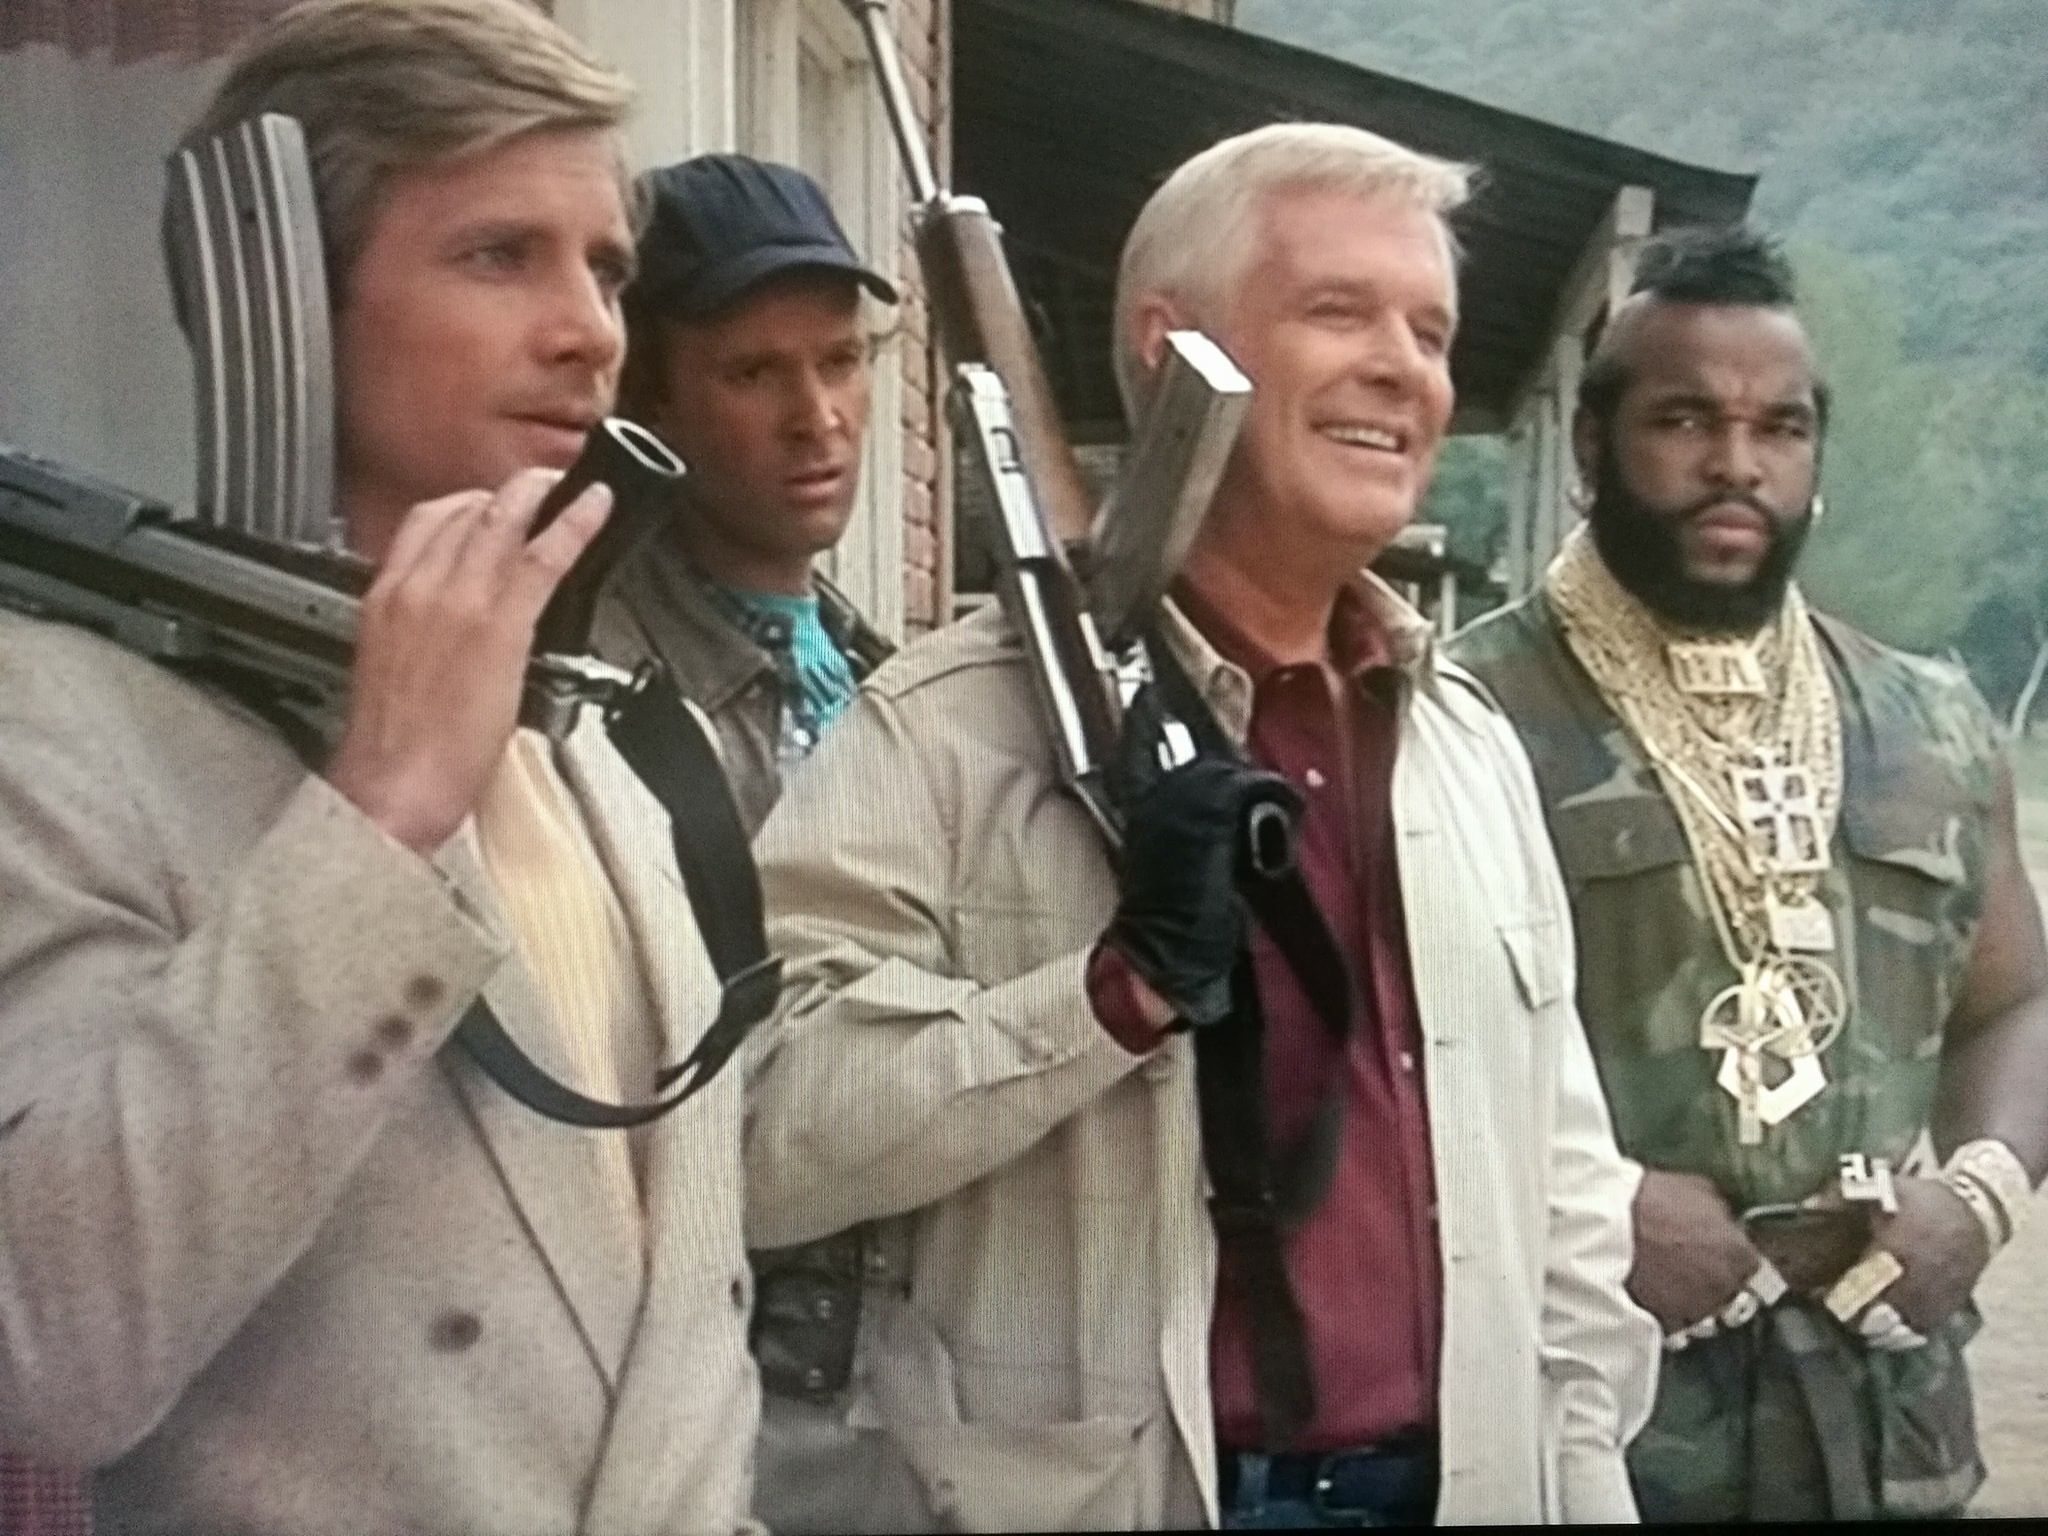 8ad09a44d6f3174212055fbed1a783ba 1 20 Things You Probably Didn't Know About The A-Team